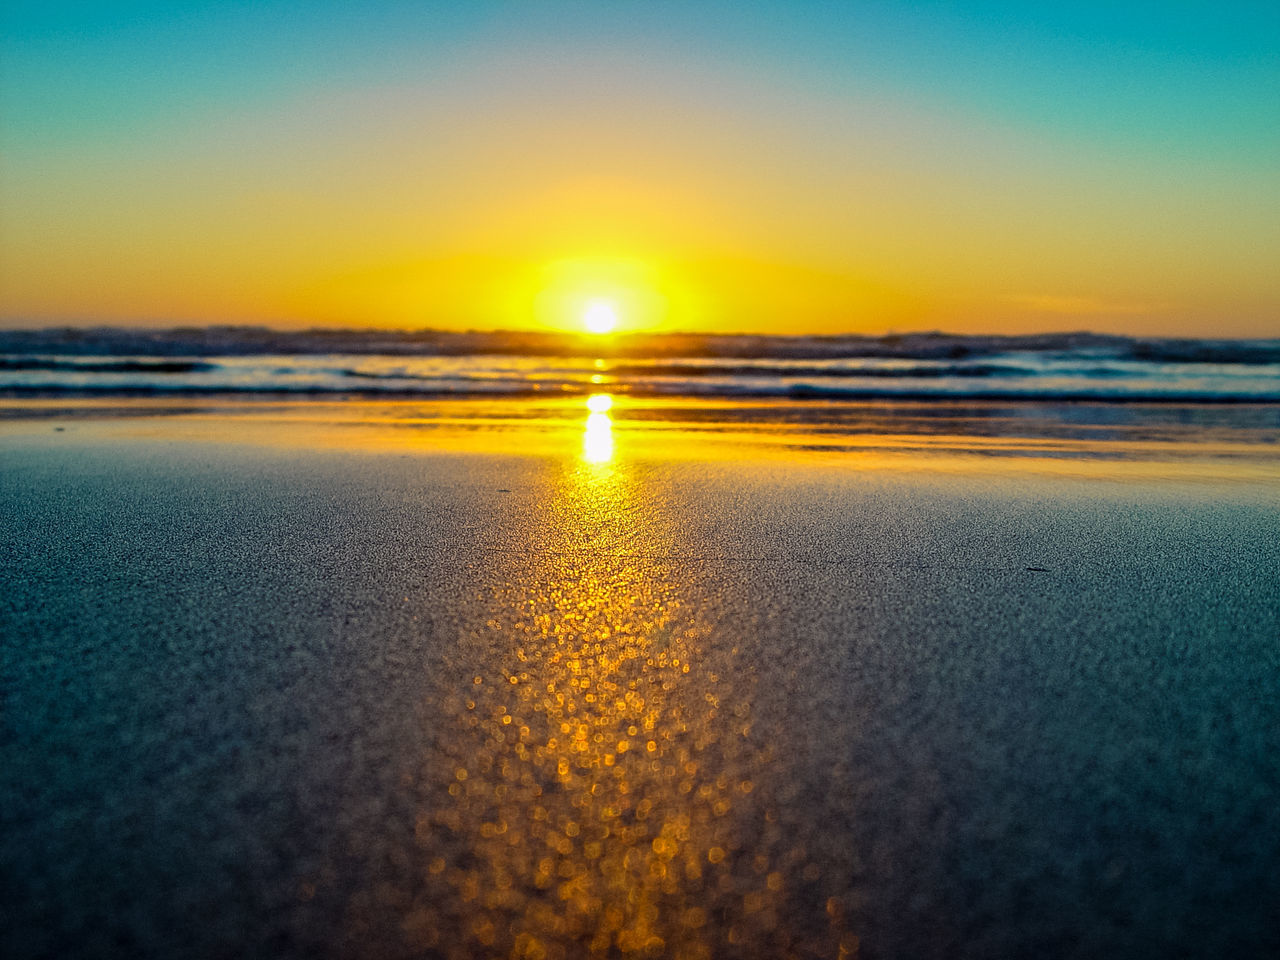 sunset, beach, beauty in nature, sea, scenics, nature, sun, tranquil scene, sunlight, tranquility, sky, outdoors, no people, water, sand, horizon over water, day, pebble beach